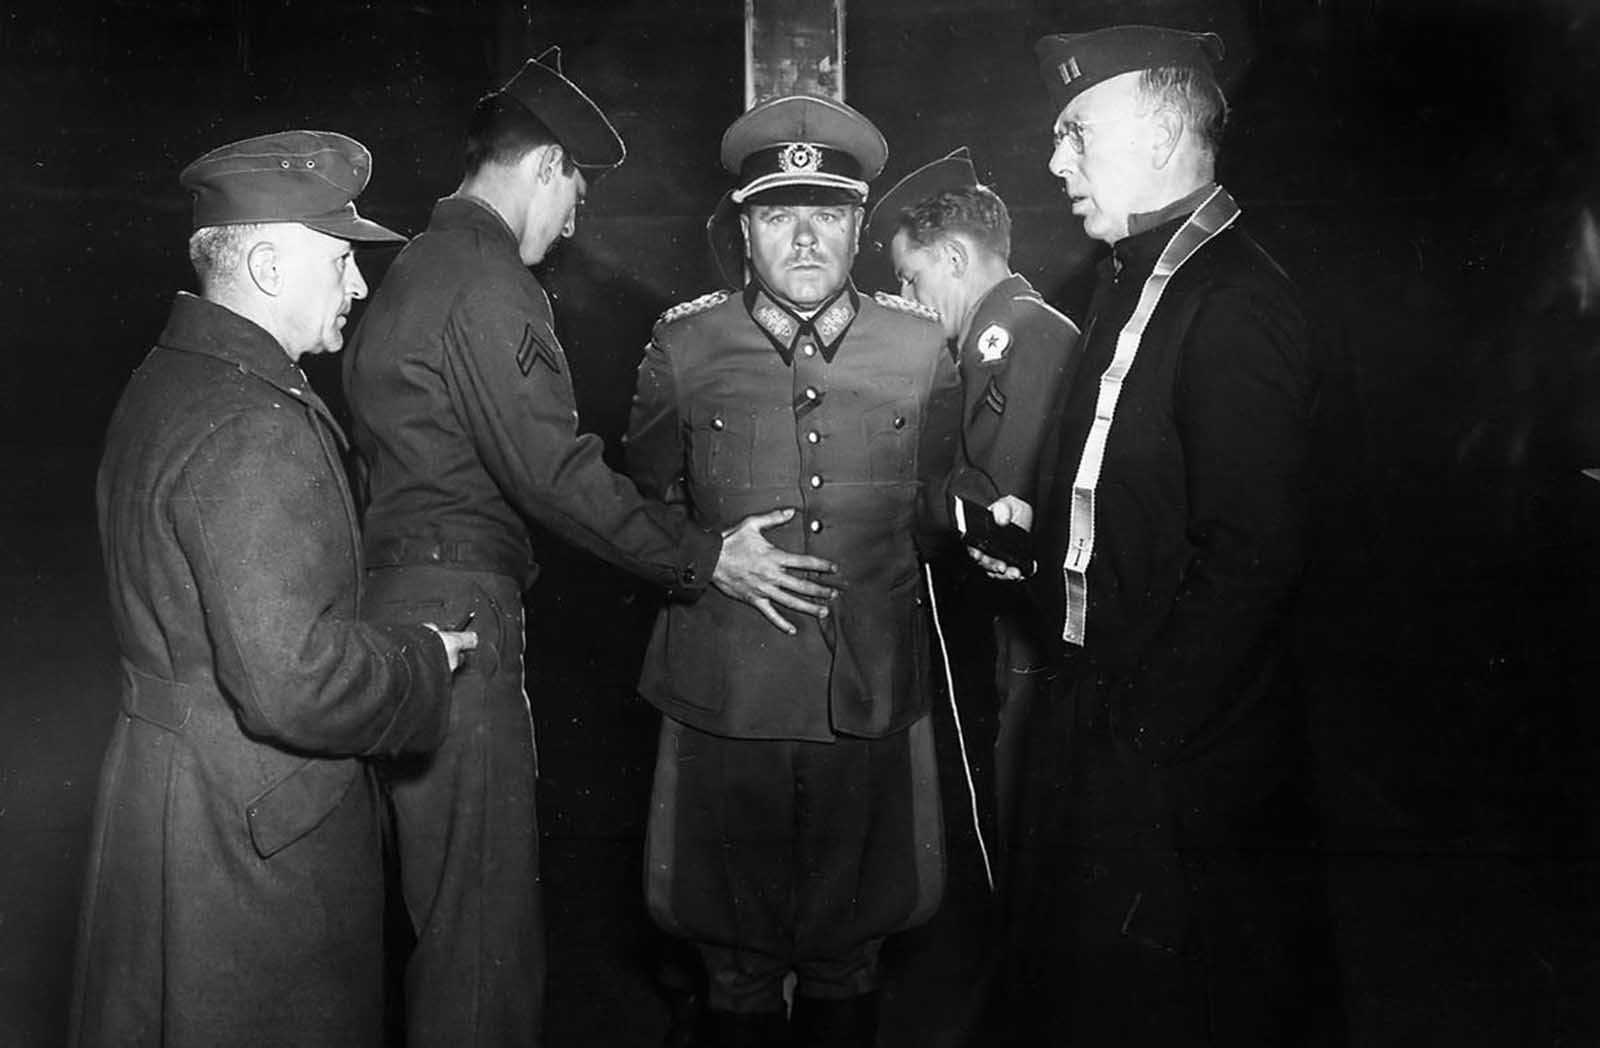 German Wehrmacht General Anton Dostler is tied to a stake before his execution by a firing squad in a stockade in Aversa, Italy, on December 1, 1945. The General, Commander of the 75th Army Corps, was sentenced to death by an United States Military Commission in Rome for having ordered the shooting of 15 unarmed American prisoners of war, in La Spezia, Italy, on March 26, 1944